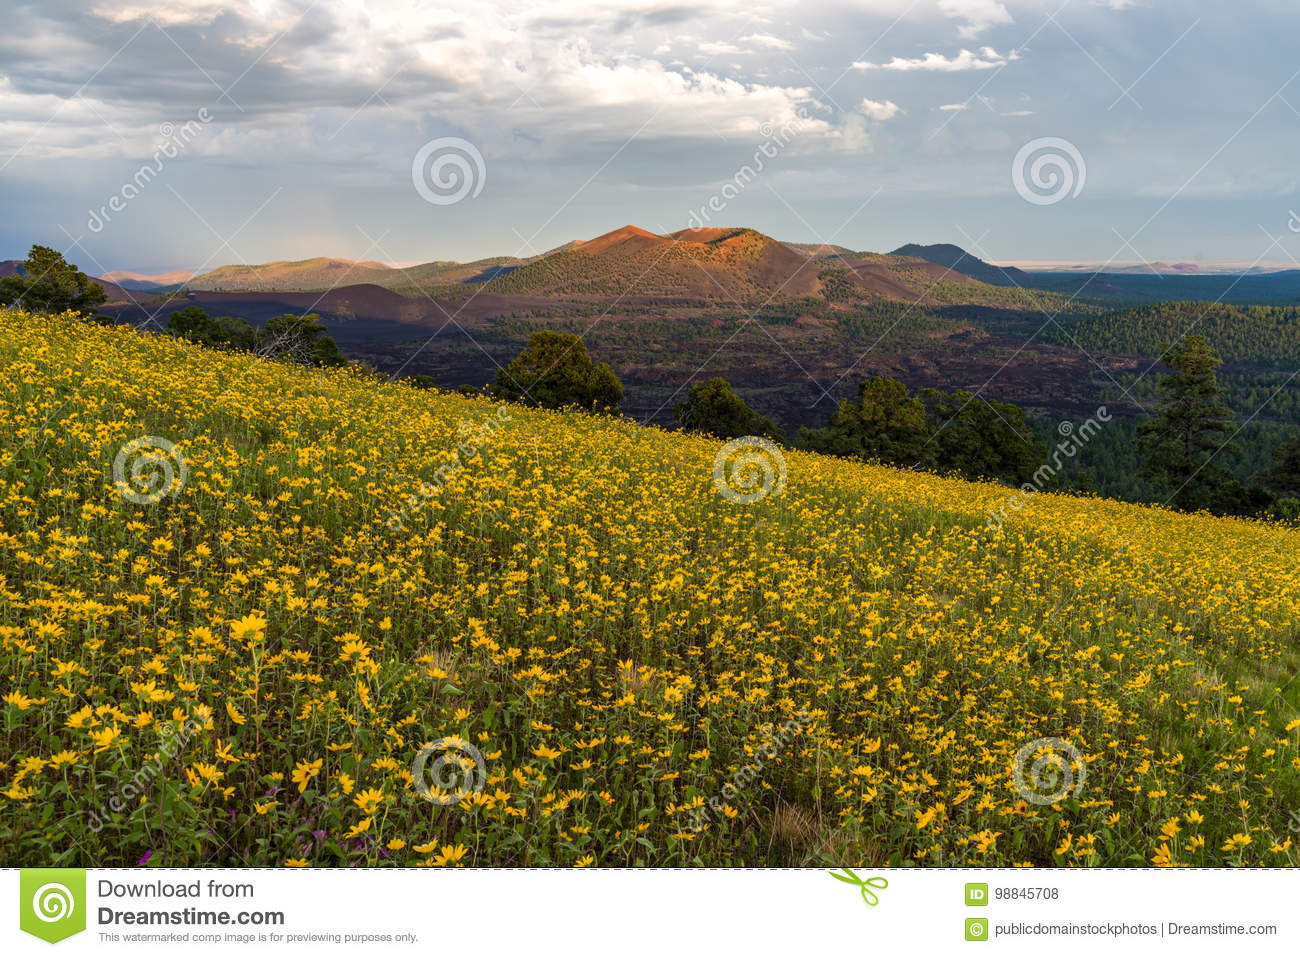 Free Public Domain CC0 Image  Summer Wildflowers East Of The Peaks ... ffdd8bc726b